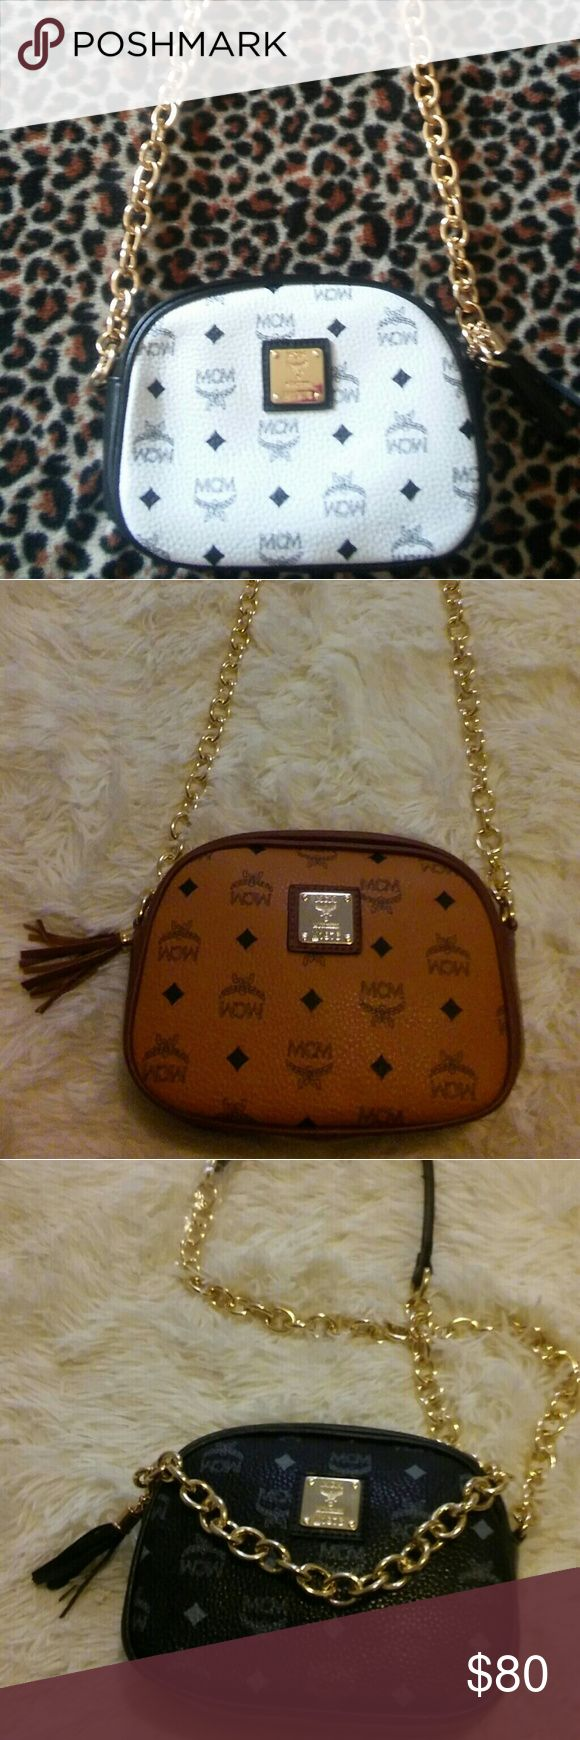 Sold out MCM chain strap crossbody purse MAKE ME AN OFFER!!!!! 3 colors MCM Inspired small purses. Gold chain strap crossbody purses. Price reflects authenticity. MCM Bags Crossbody Bags